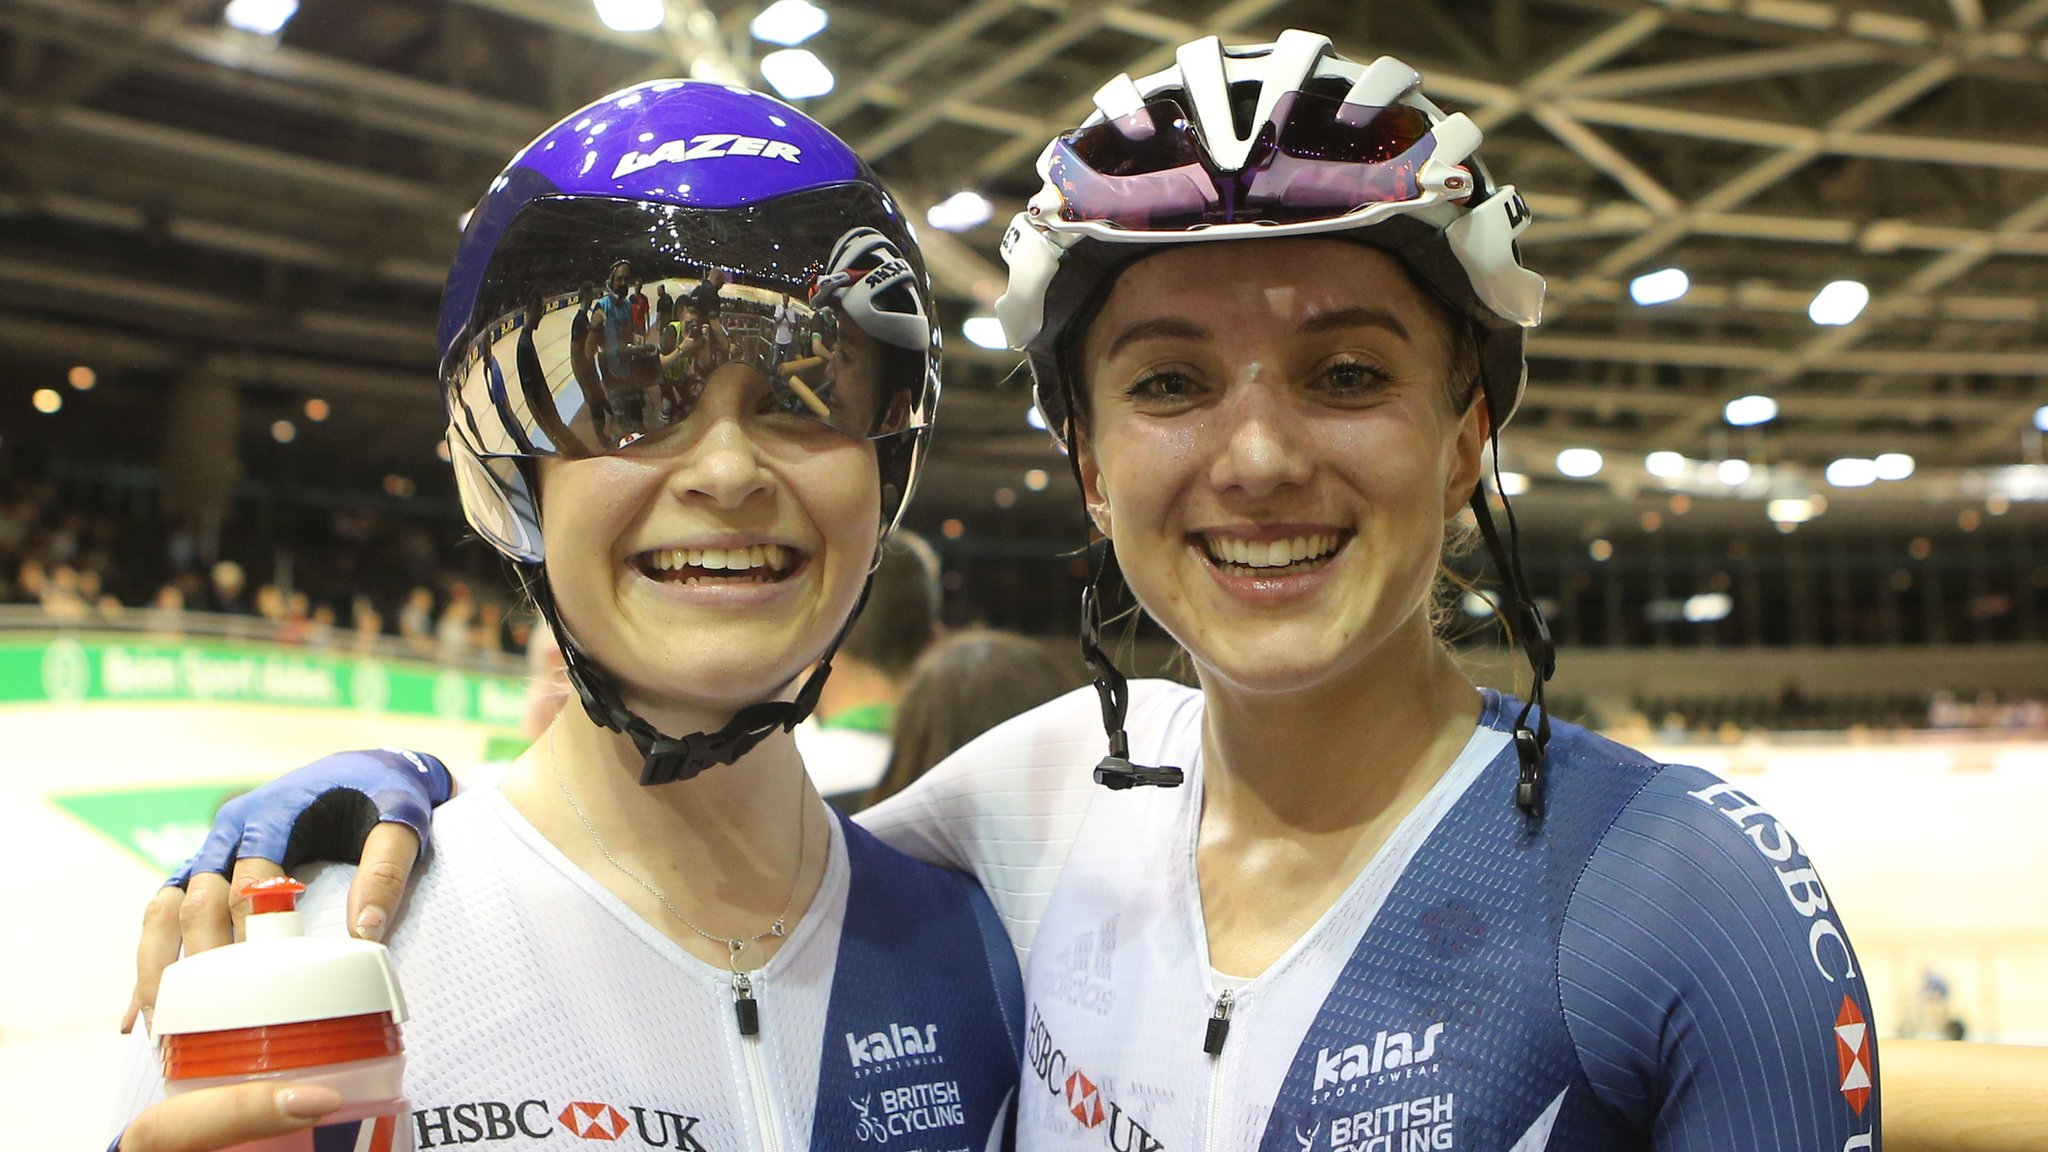 European Track Championships 2017: Britain's Elinor Barker and Ellie Dickinson win madison gold